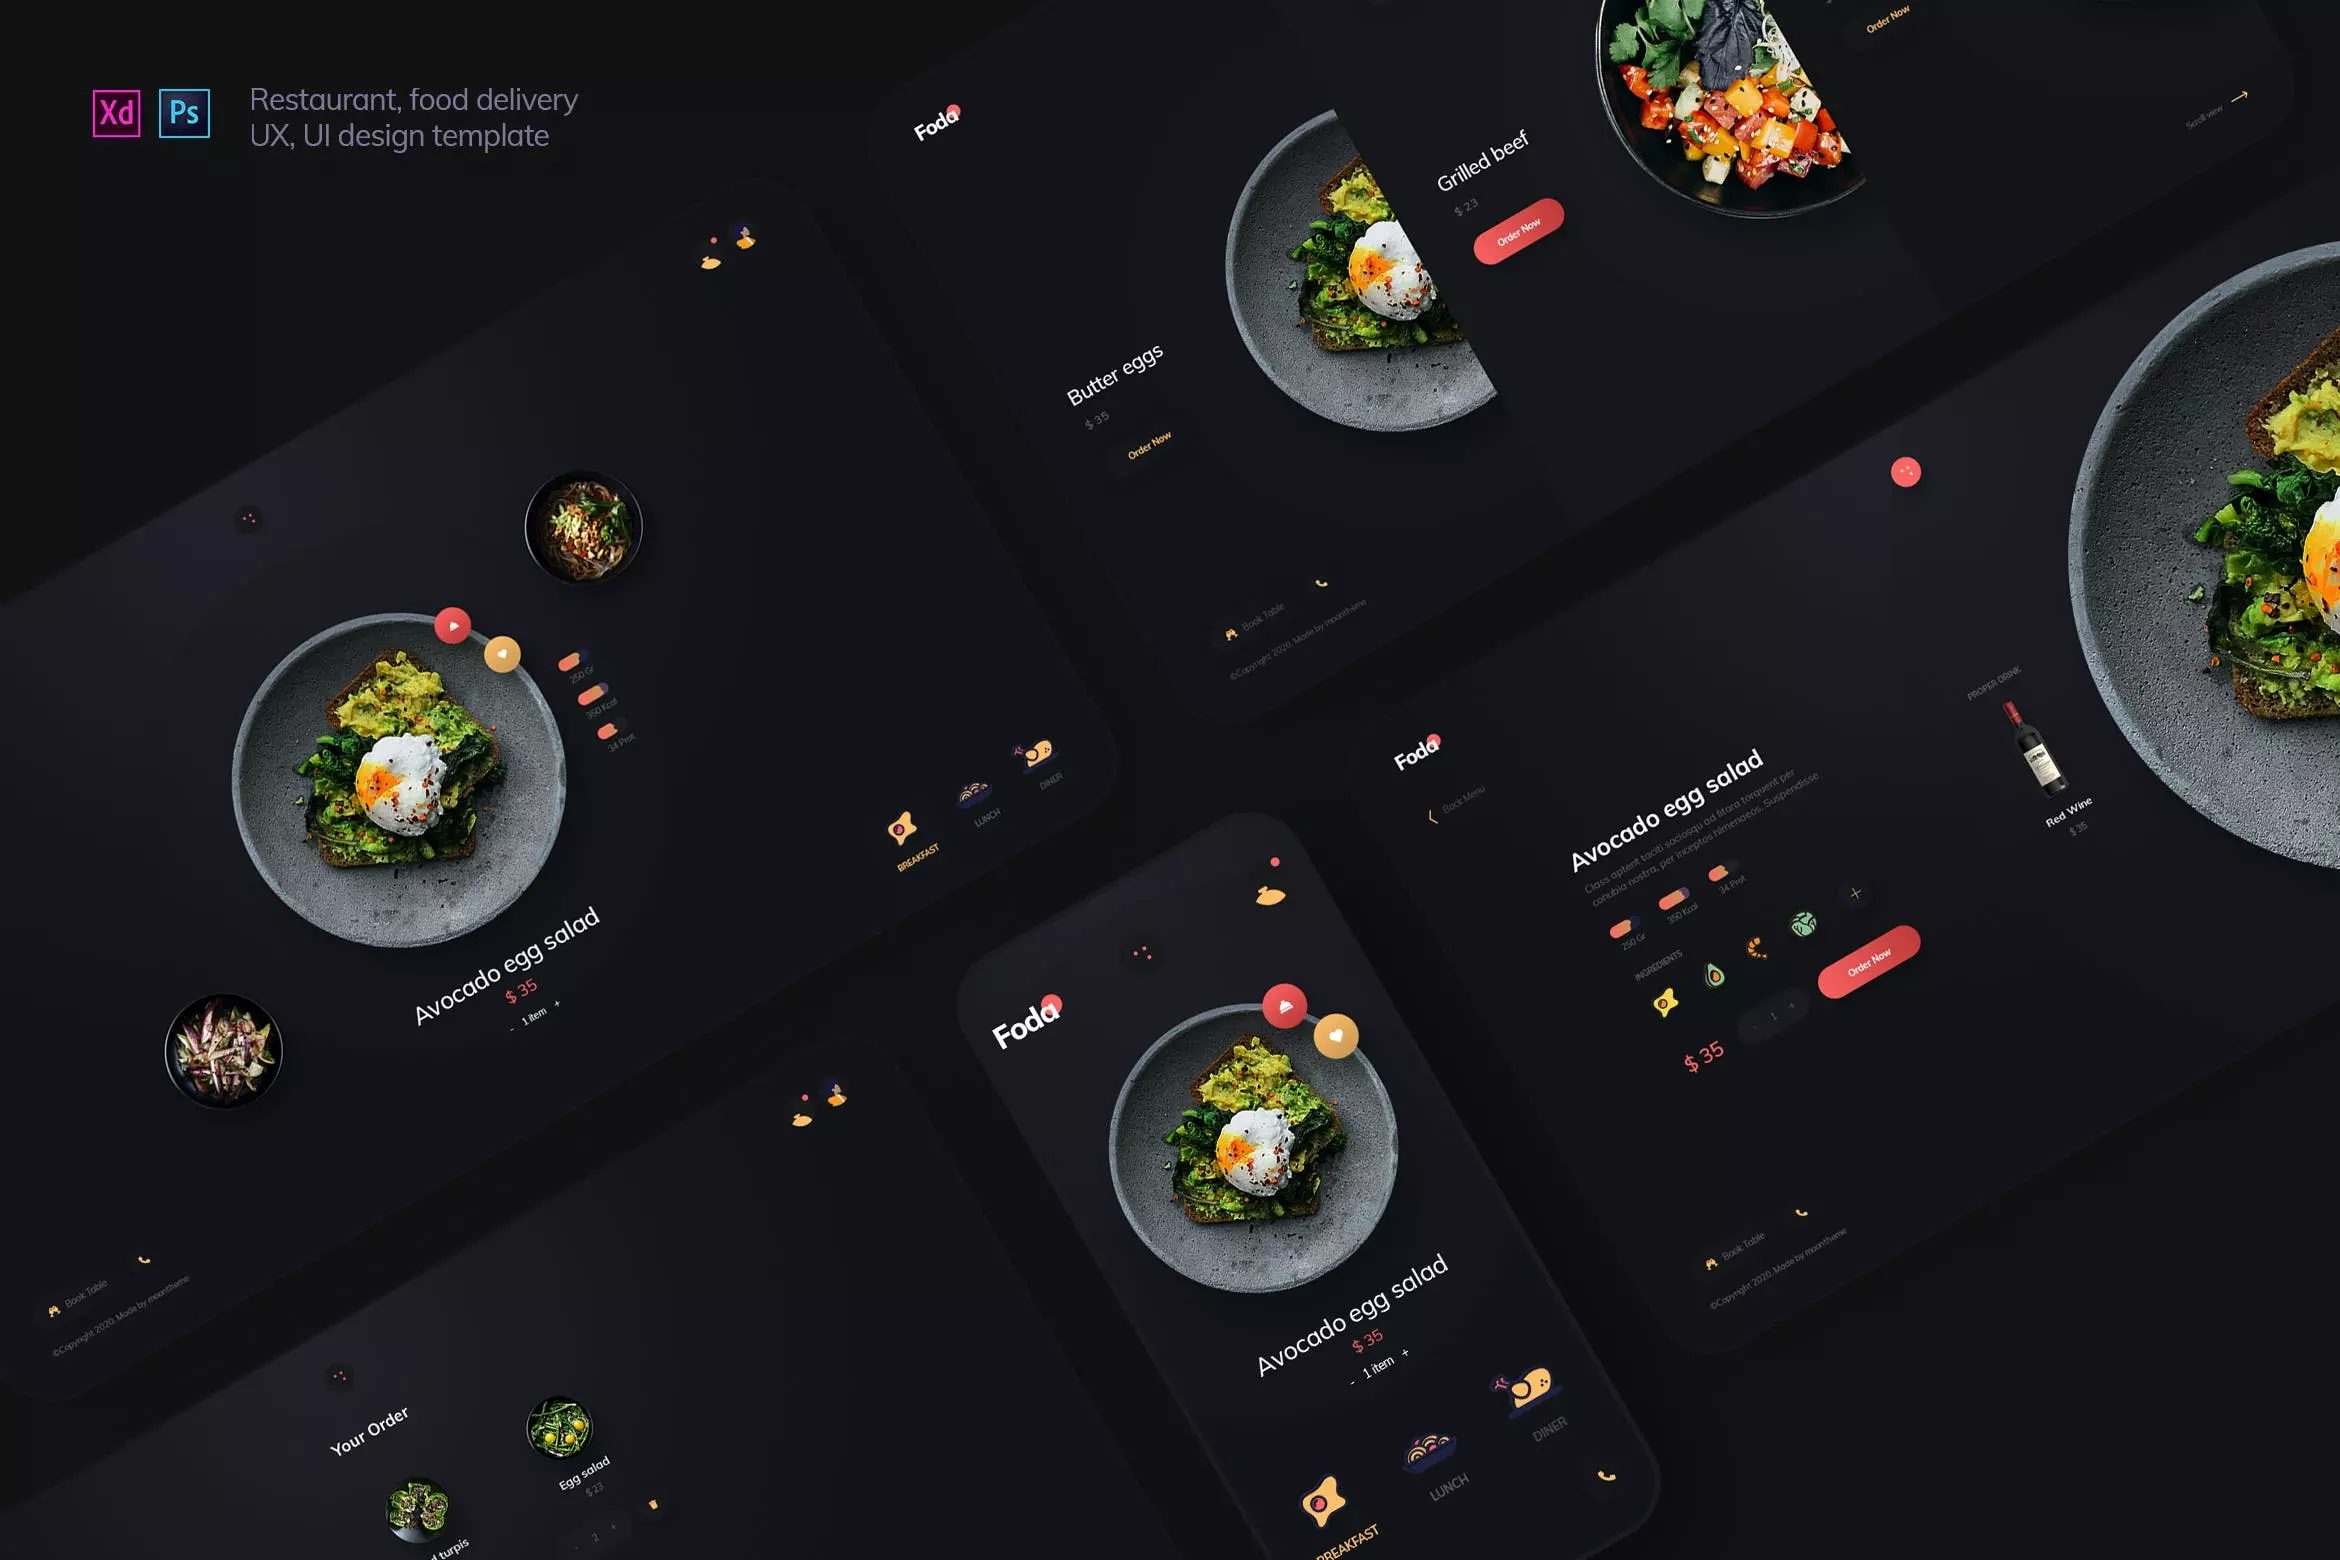 时尚高端专业餐饮移动界面设计的送餐外卖APP UI KITS-XD,PSD  foda-retaurant-food-delivery-ux-and-ui-template